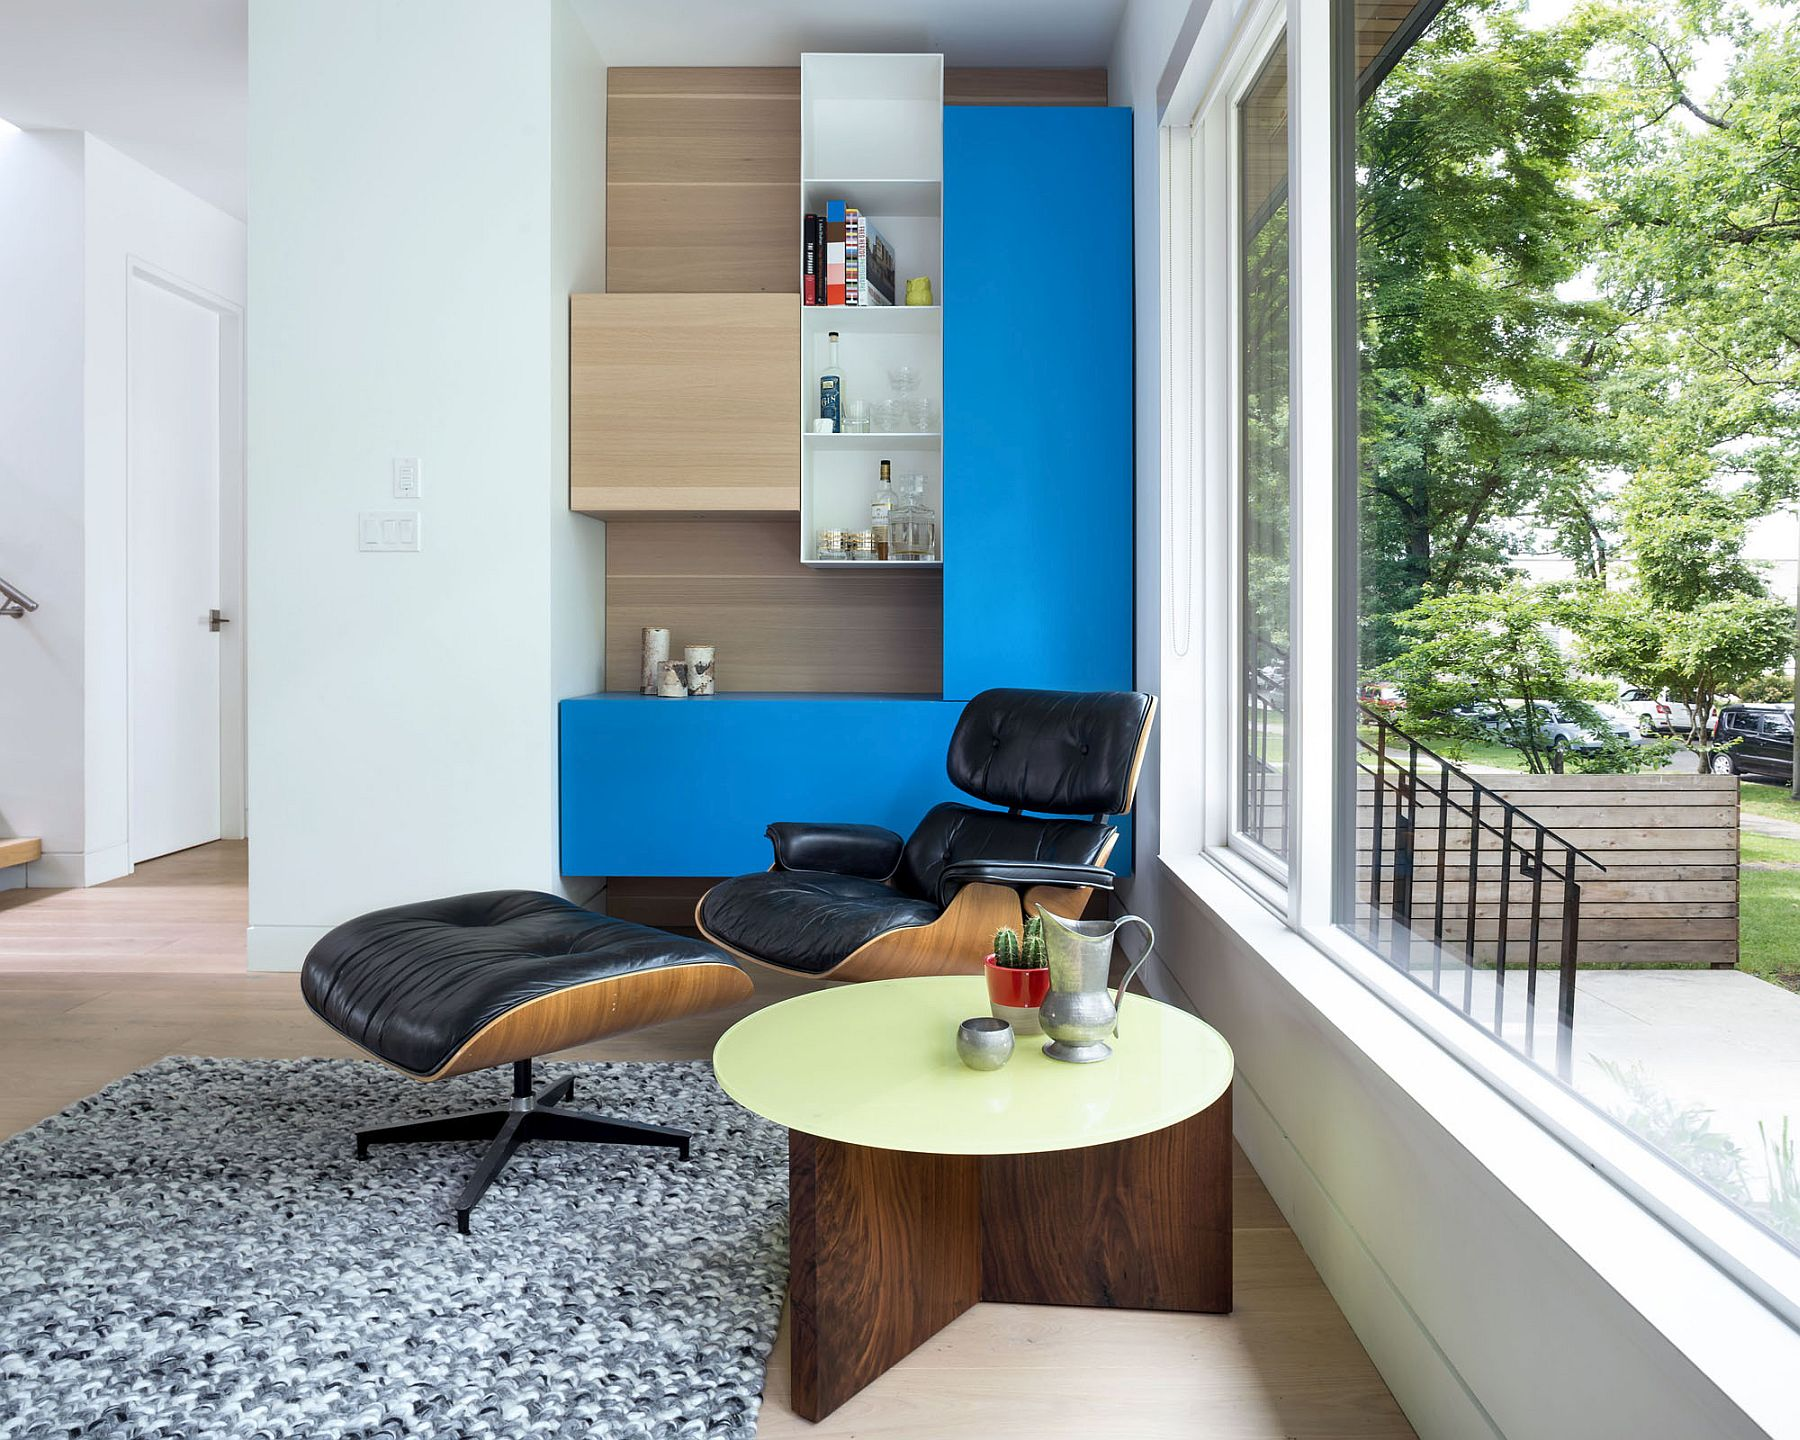 Living area with the classic Eames Lounger and colorful modular shelving